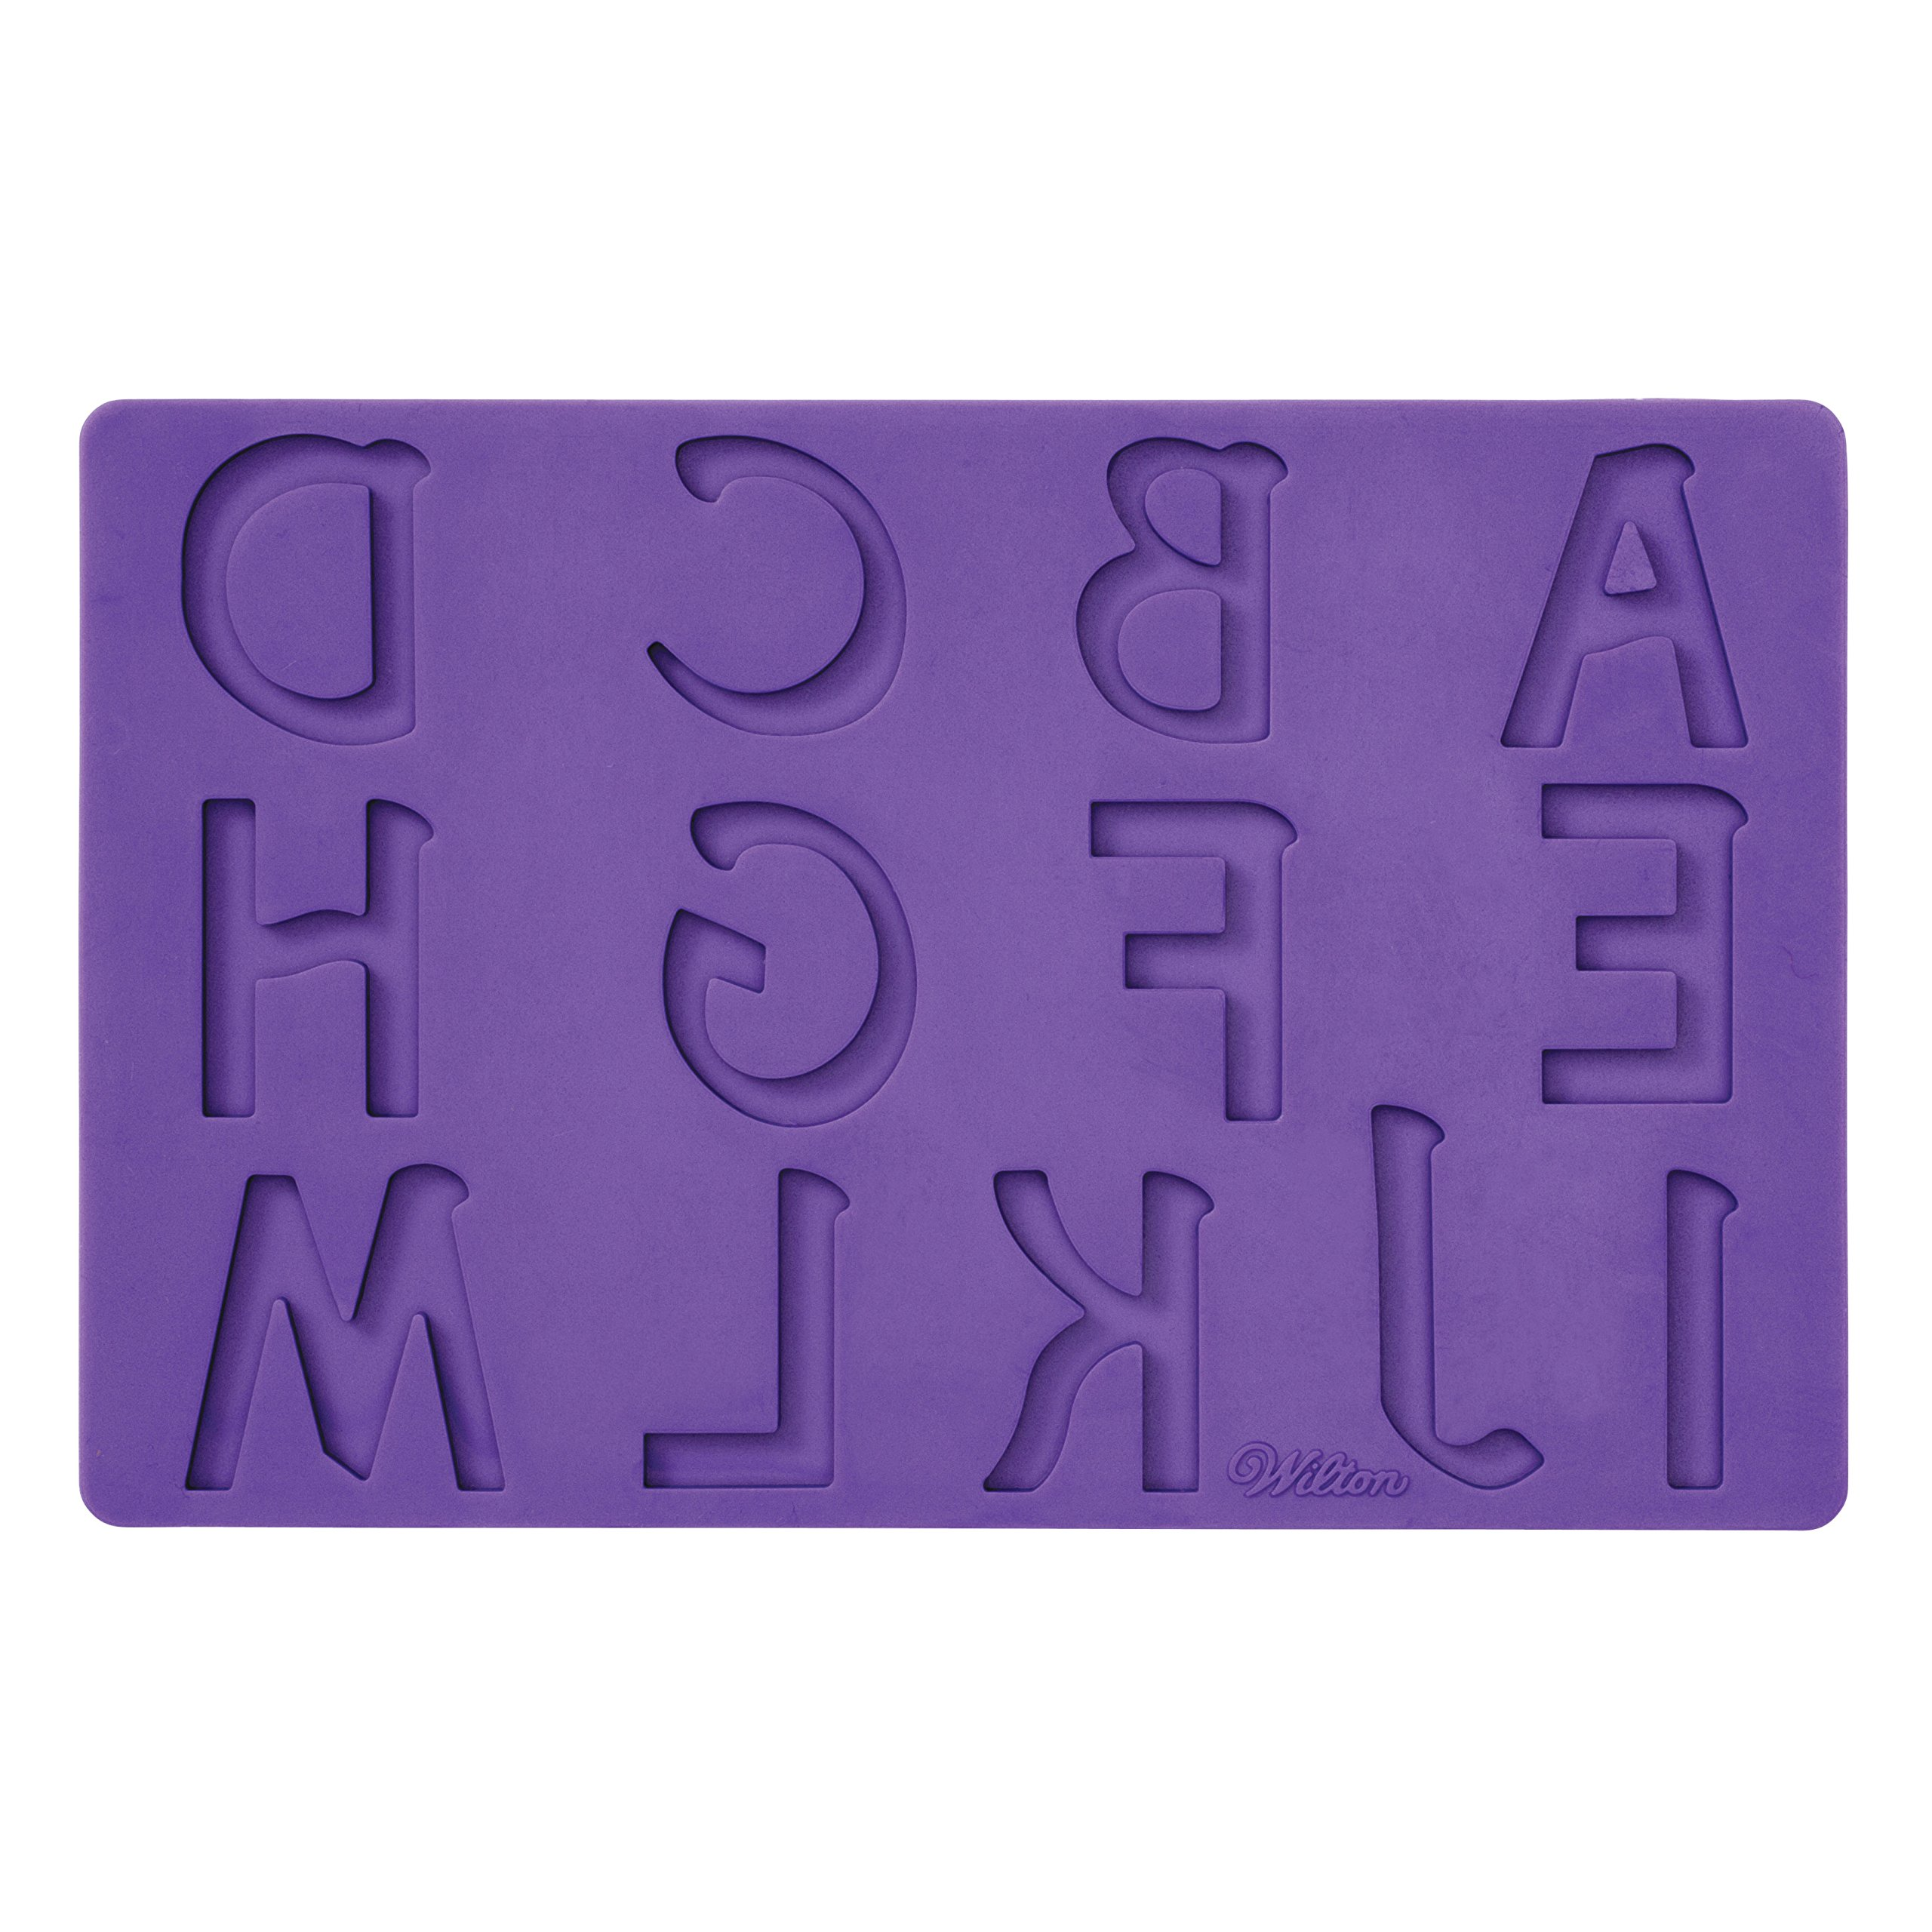 Wilton Silicone Letters and Numbers Fondant and Gum Paste Molds, 4-Piece - Cake Decorating Supplies by Wilton (Image #3)